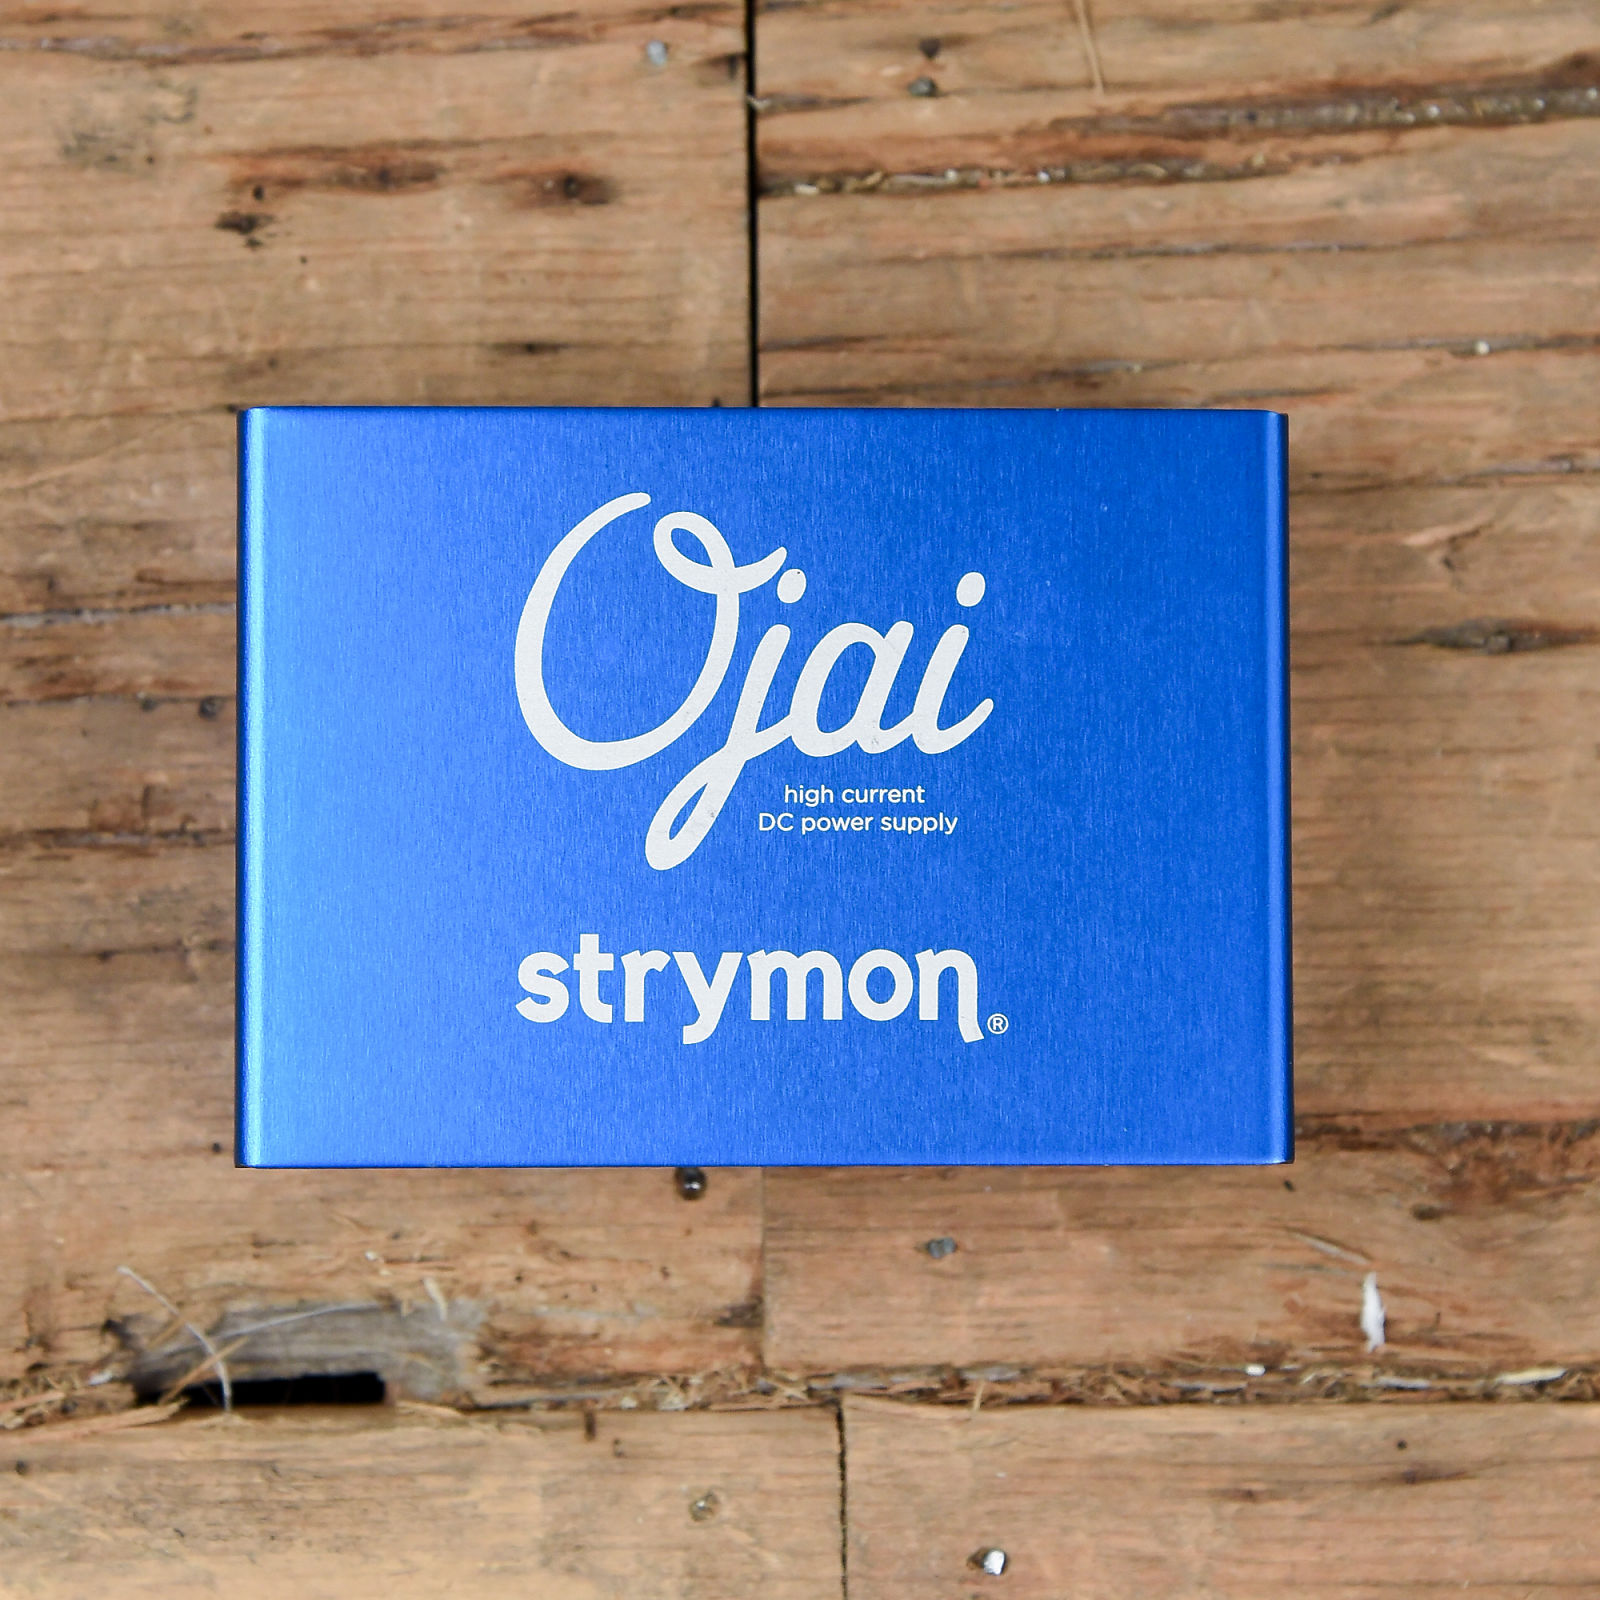 Strymon Ojai High Current Dc Power Supply Used